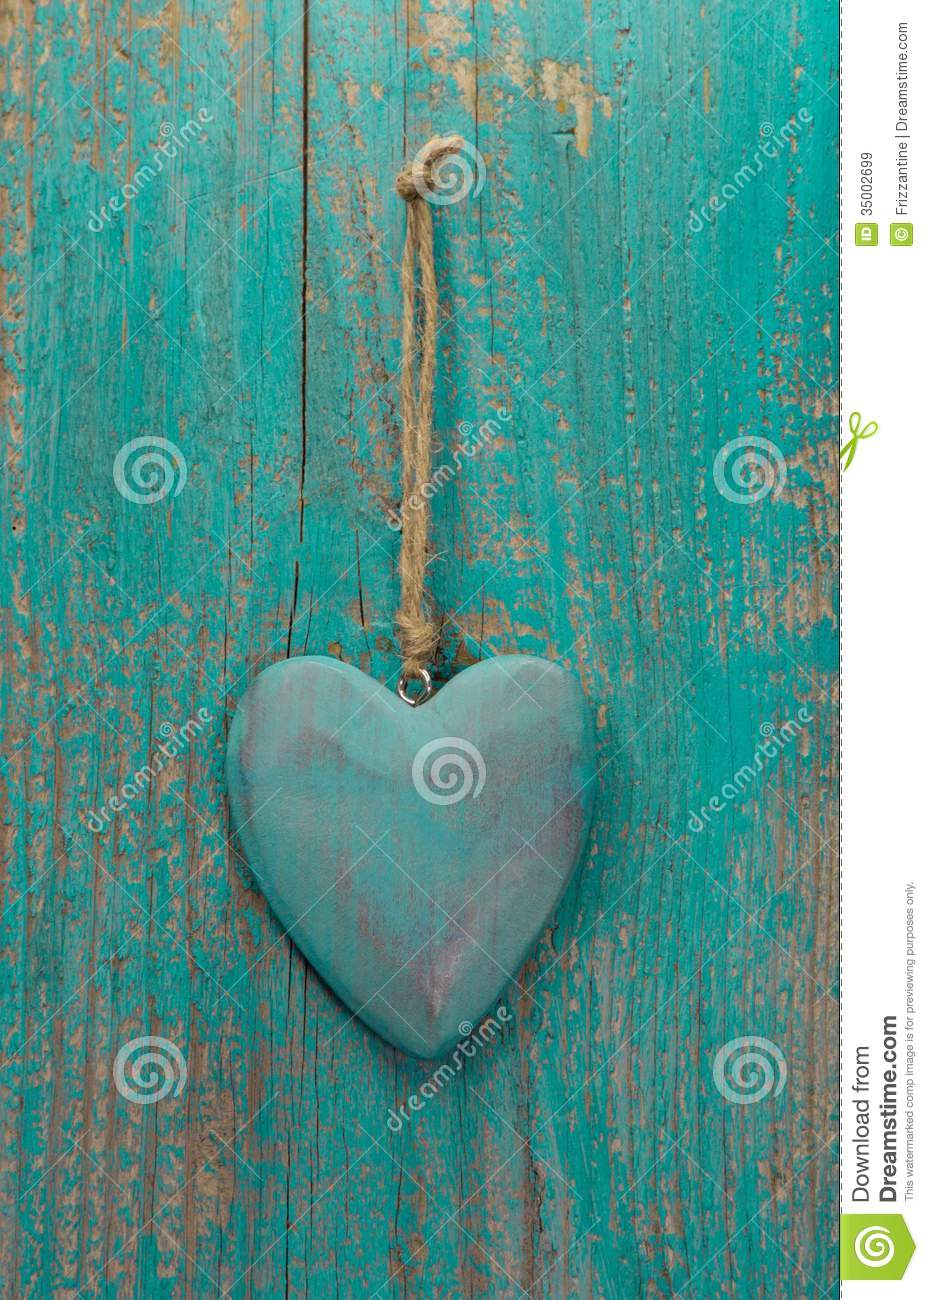 Rustic Heart On Turquoise Wooden Surface For Valentine Birthday